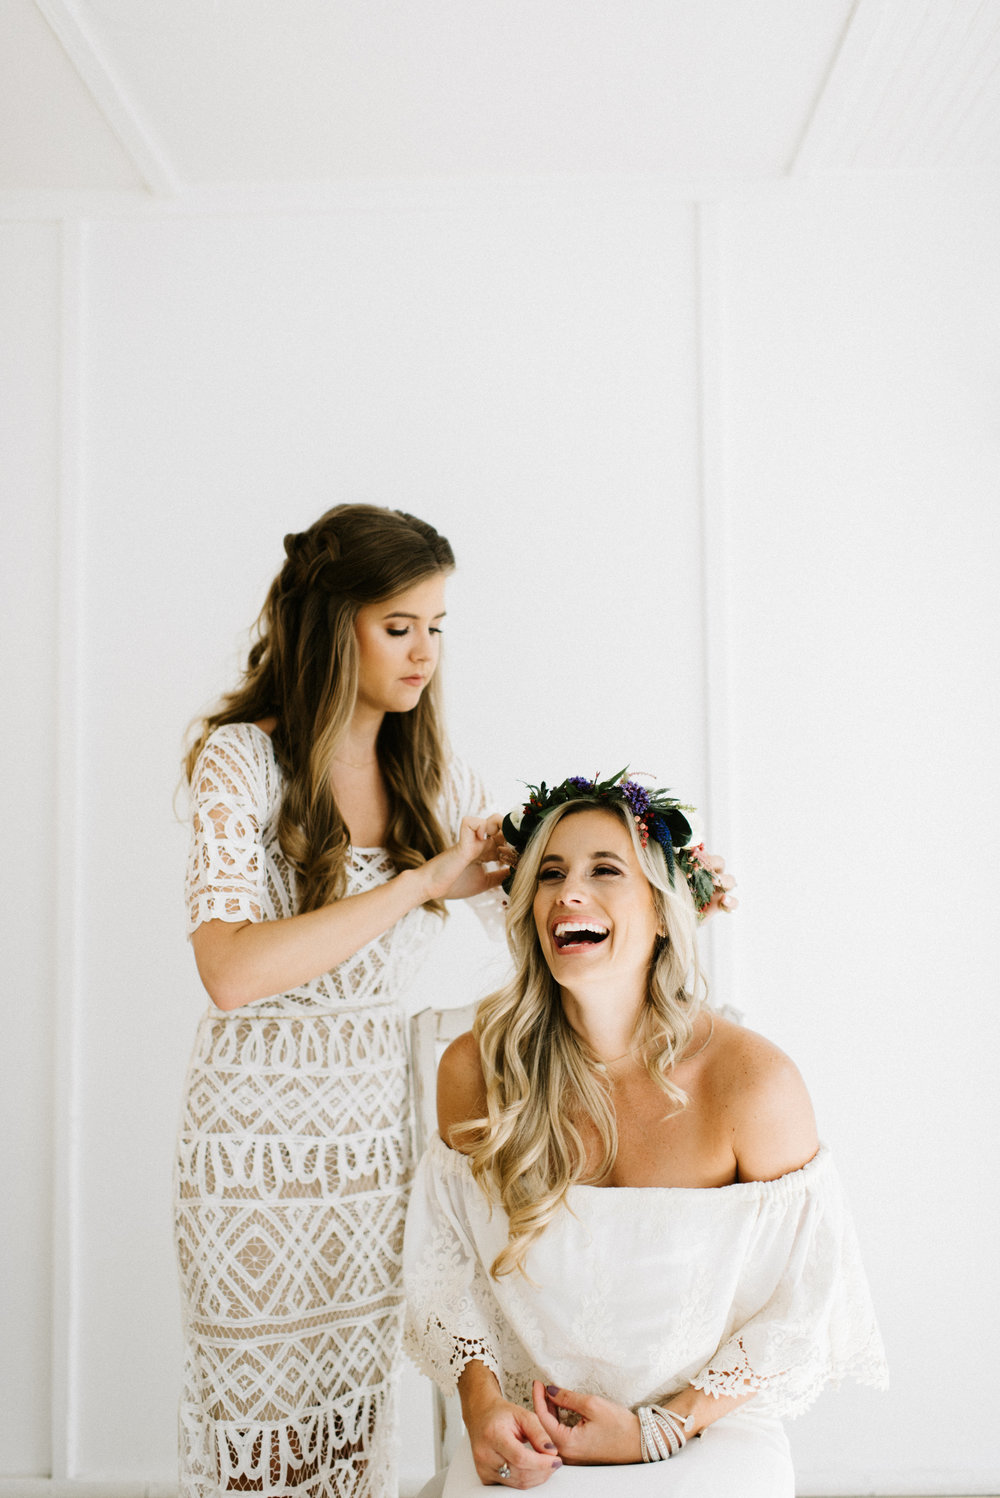 Rebecca-Read-Photography-brooke-jeremy-lang-farm-wedding-daughters-of-simone-lu-boho-wedding-southern-wedding-ivory-and-beau-bridal-boutique-savannah-bridal-boutique-savannah-wedding-dresses-lowcountry-bride-savannah-wedding-planner-6.jpg